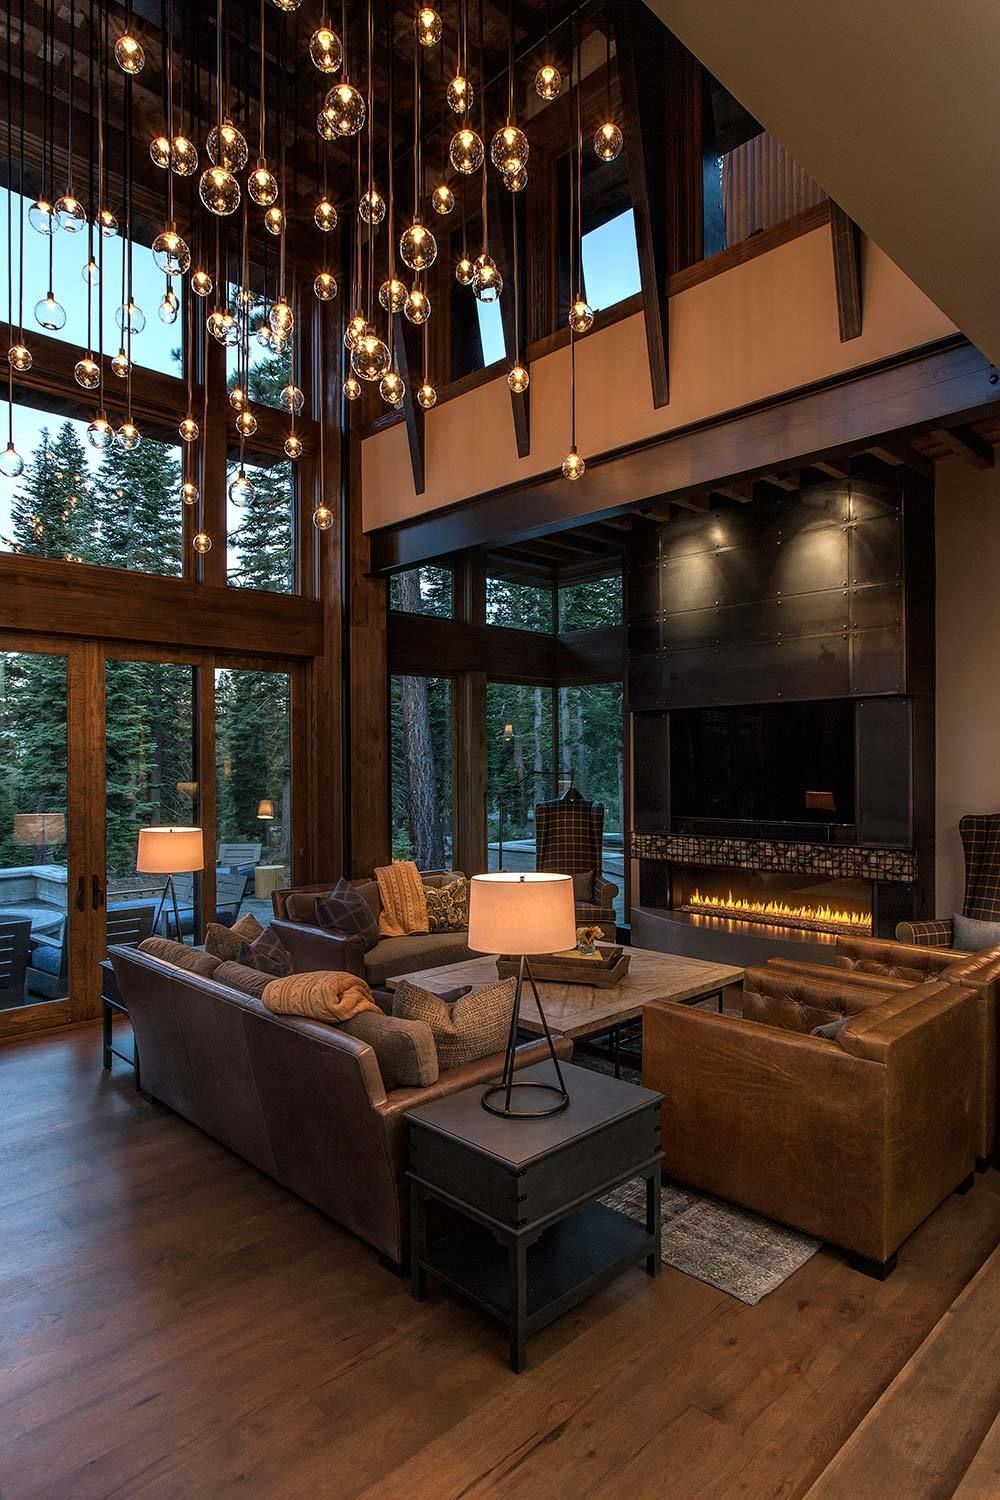 rustic contemporary living room images of rooms with black leather furniture lake tahoe getaway features barn aesthetic ideal rustico moderno home studio v diseno de interiores 04 1 kindesign more